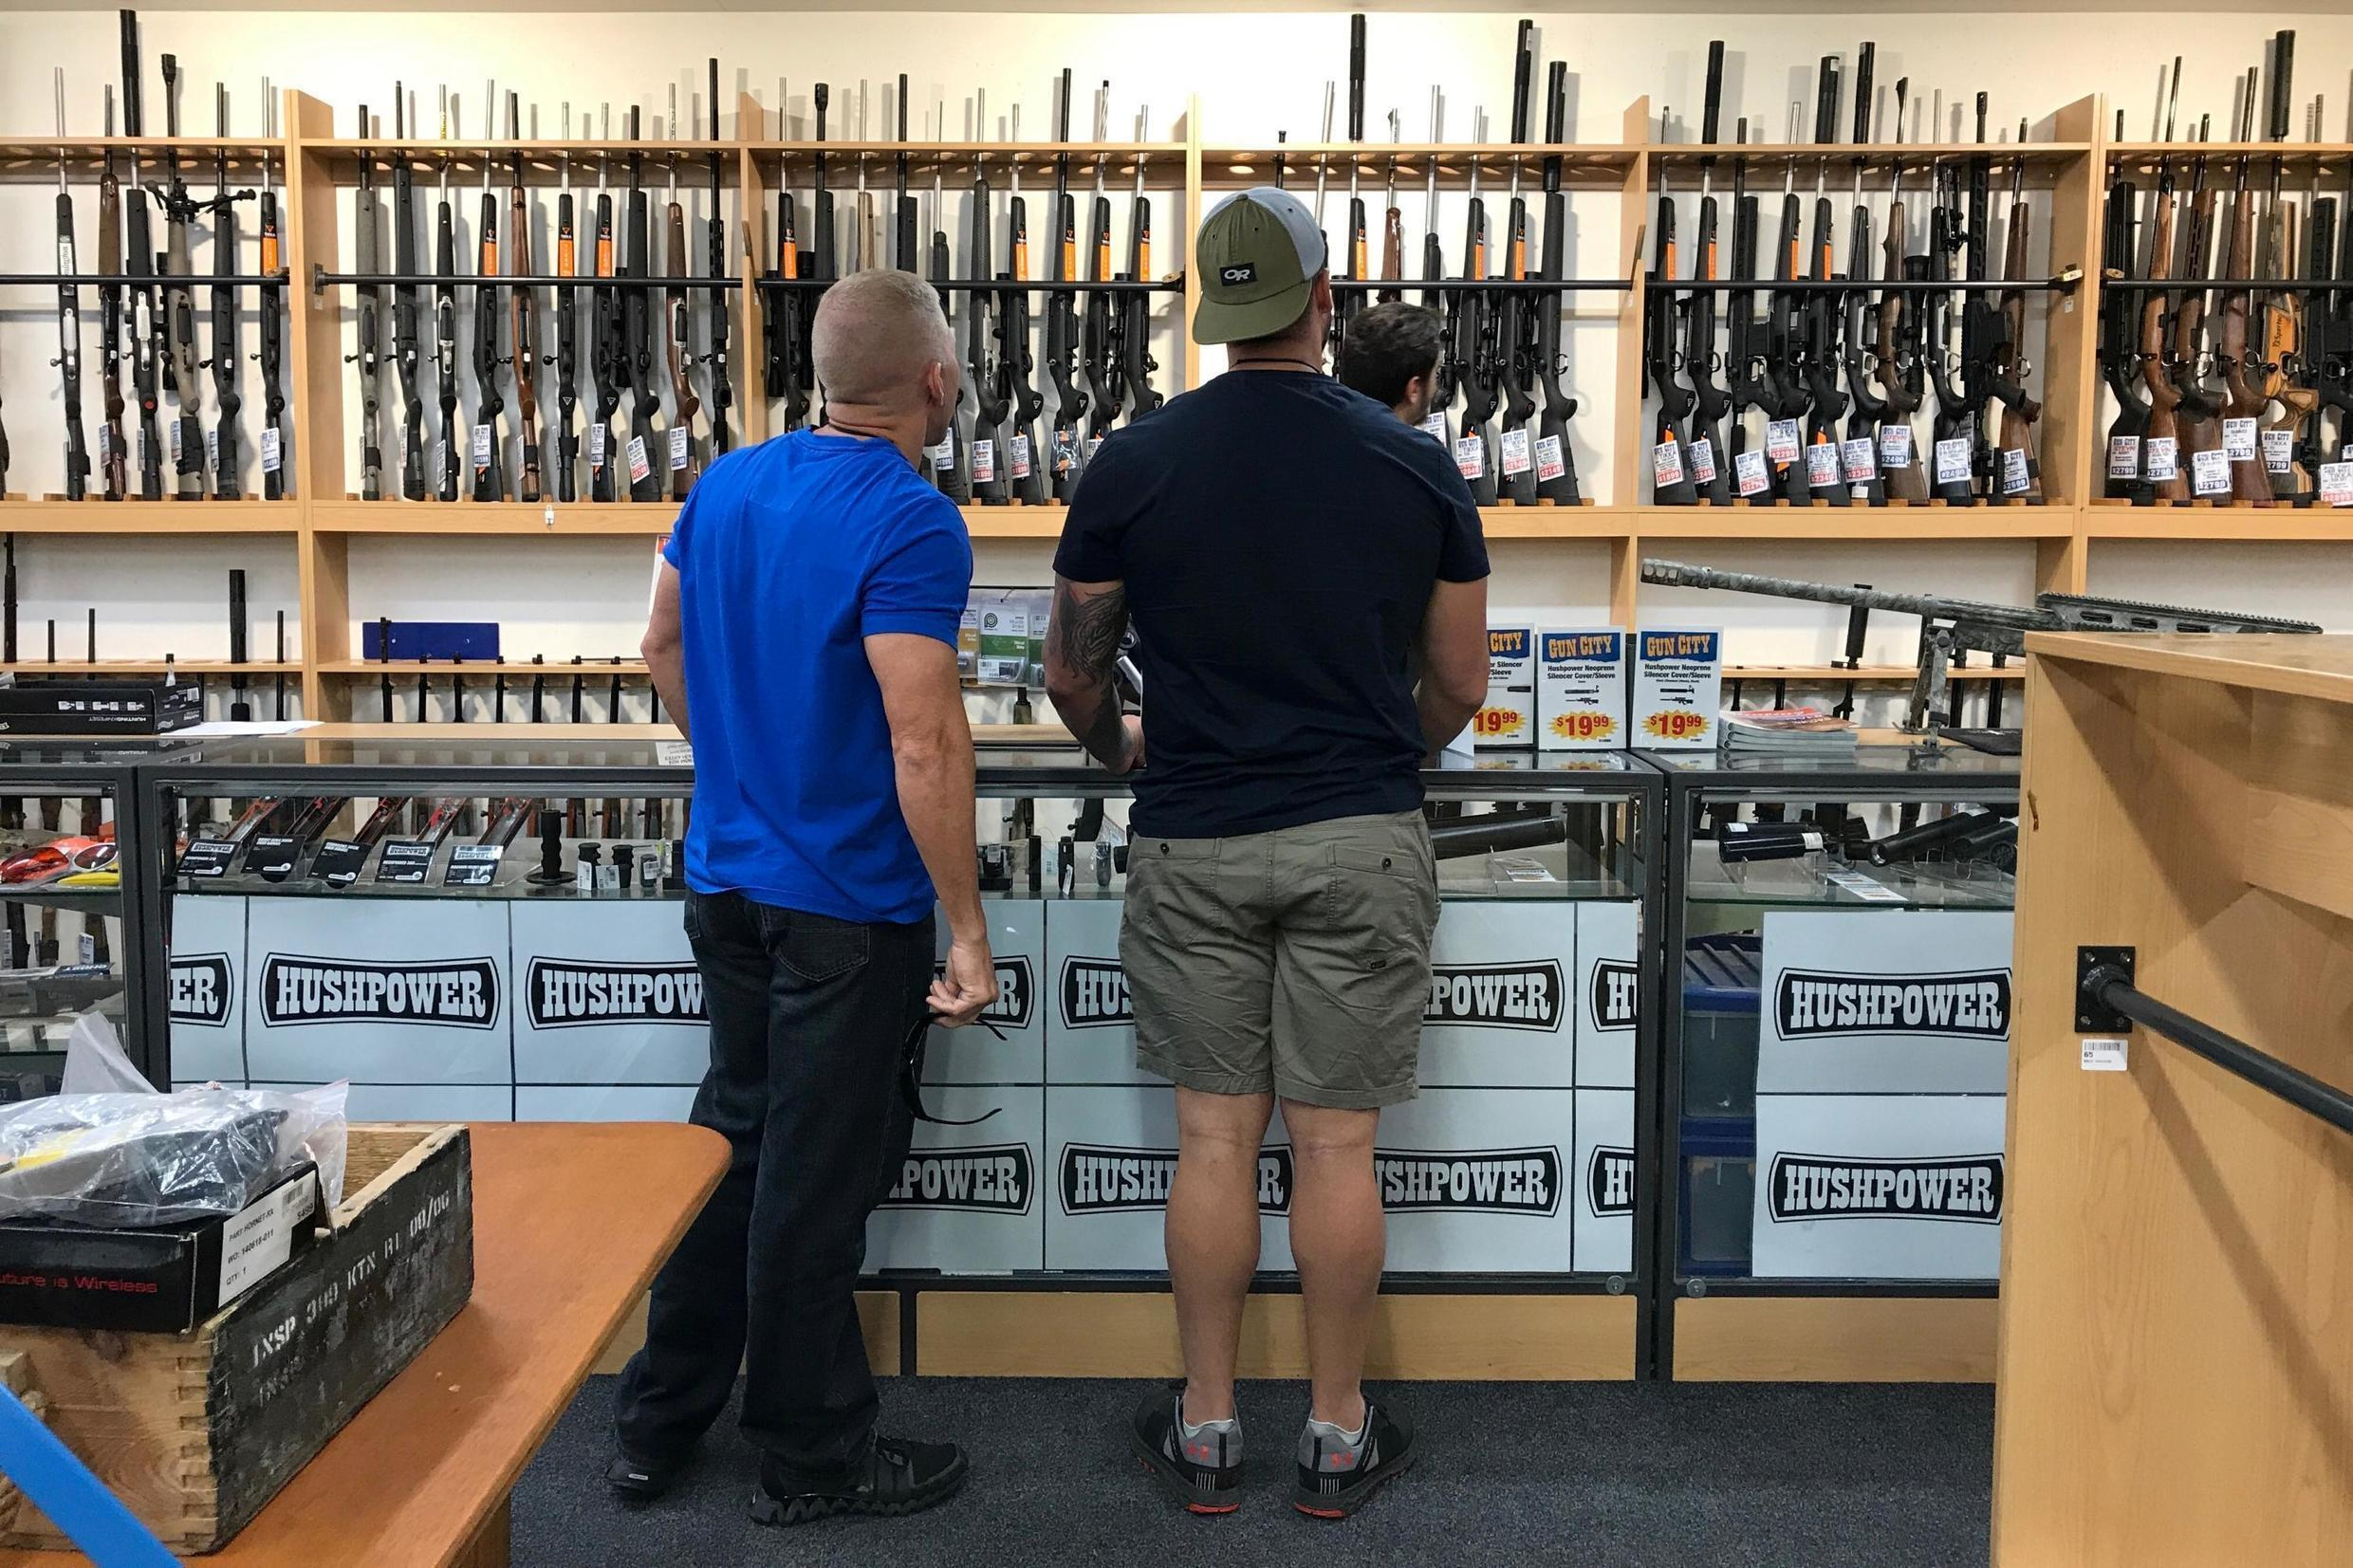 People look at firearms and accessories on display at Gun City gunshop in Christchurch, New Zealand